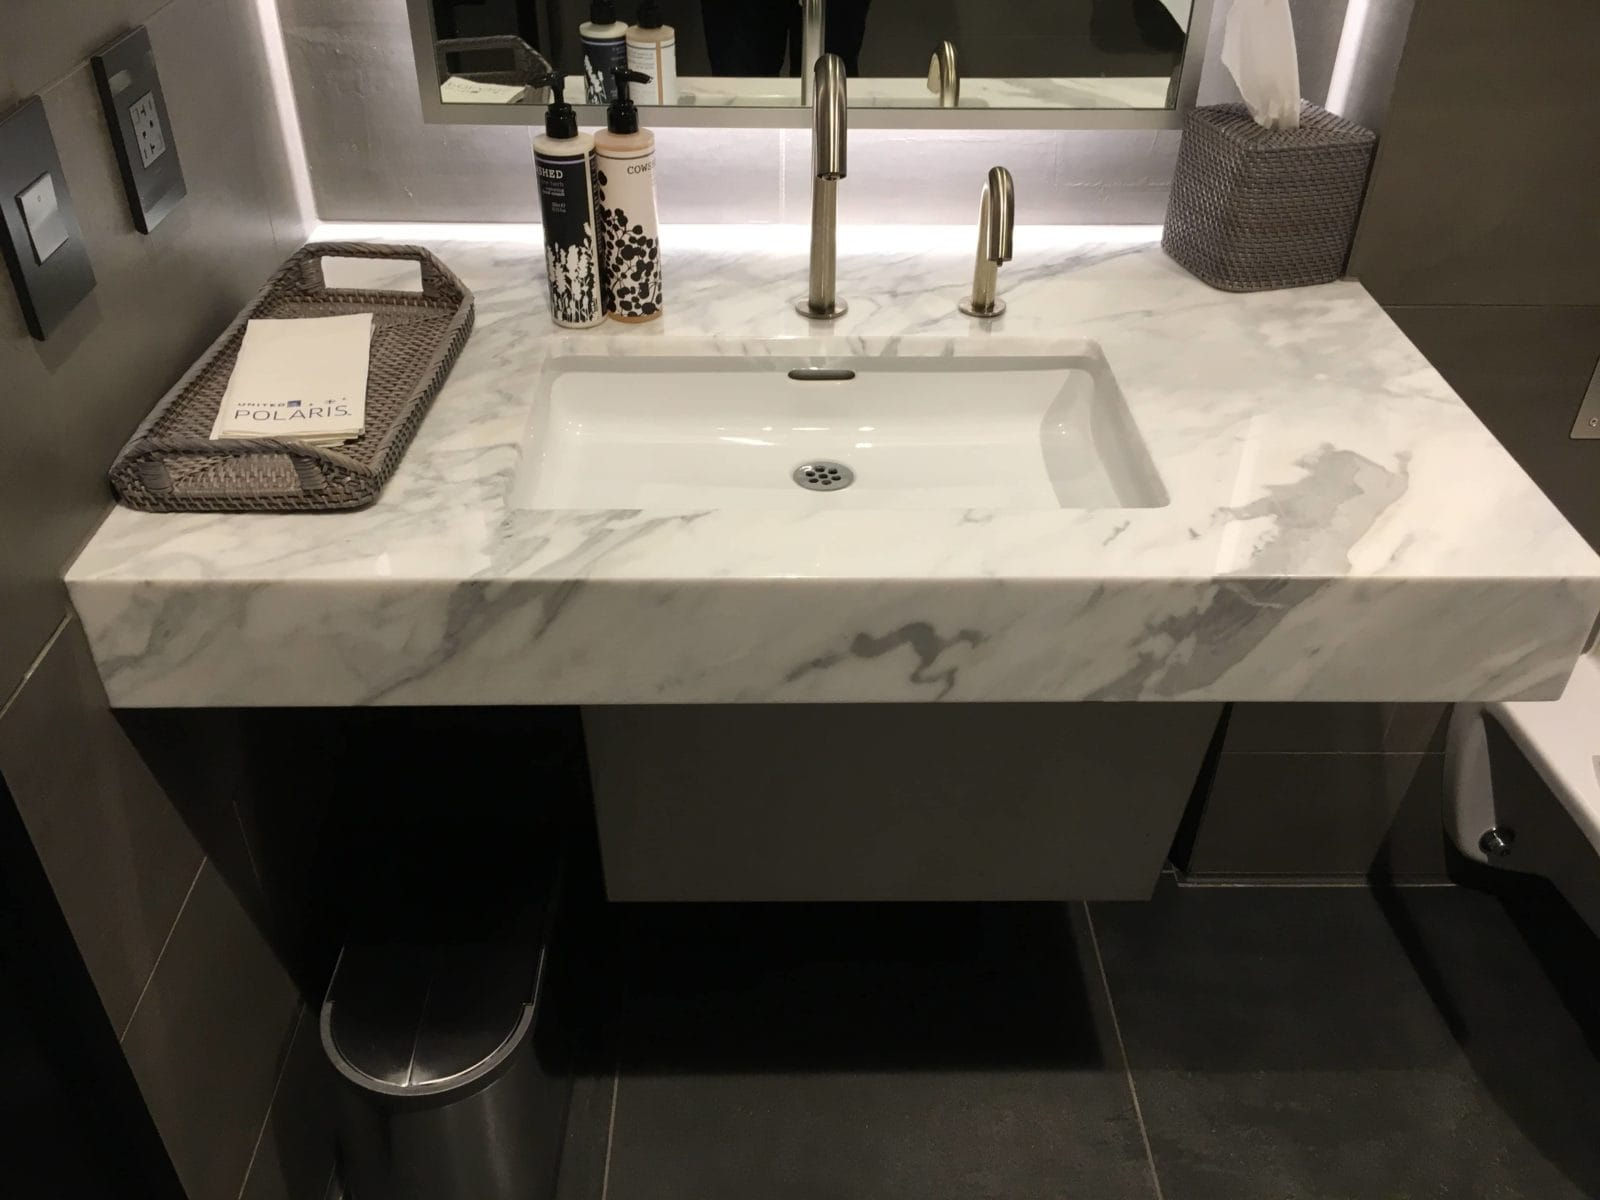 United Polaris Lounge LAX - Waschbecken